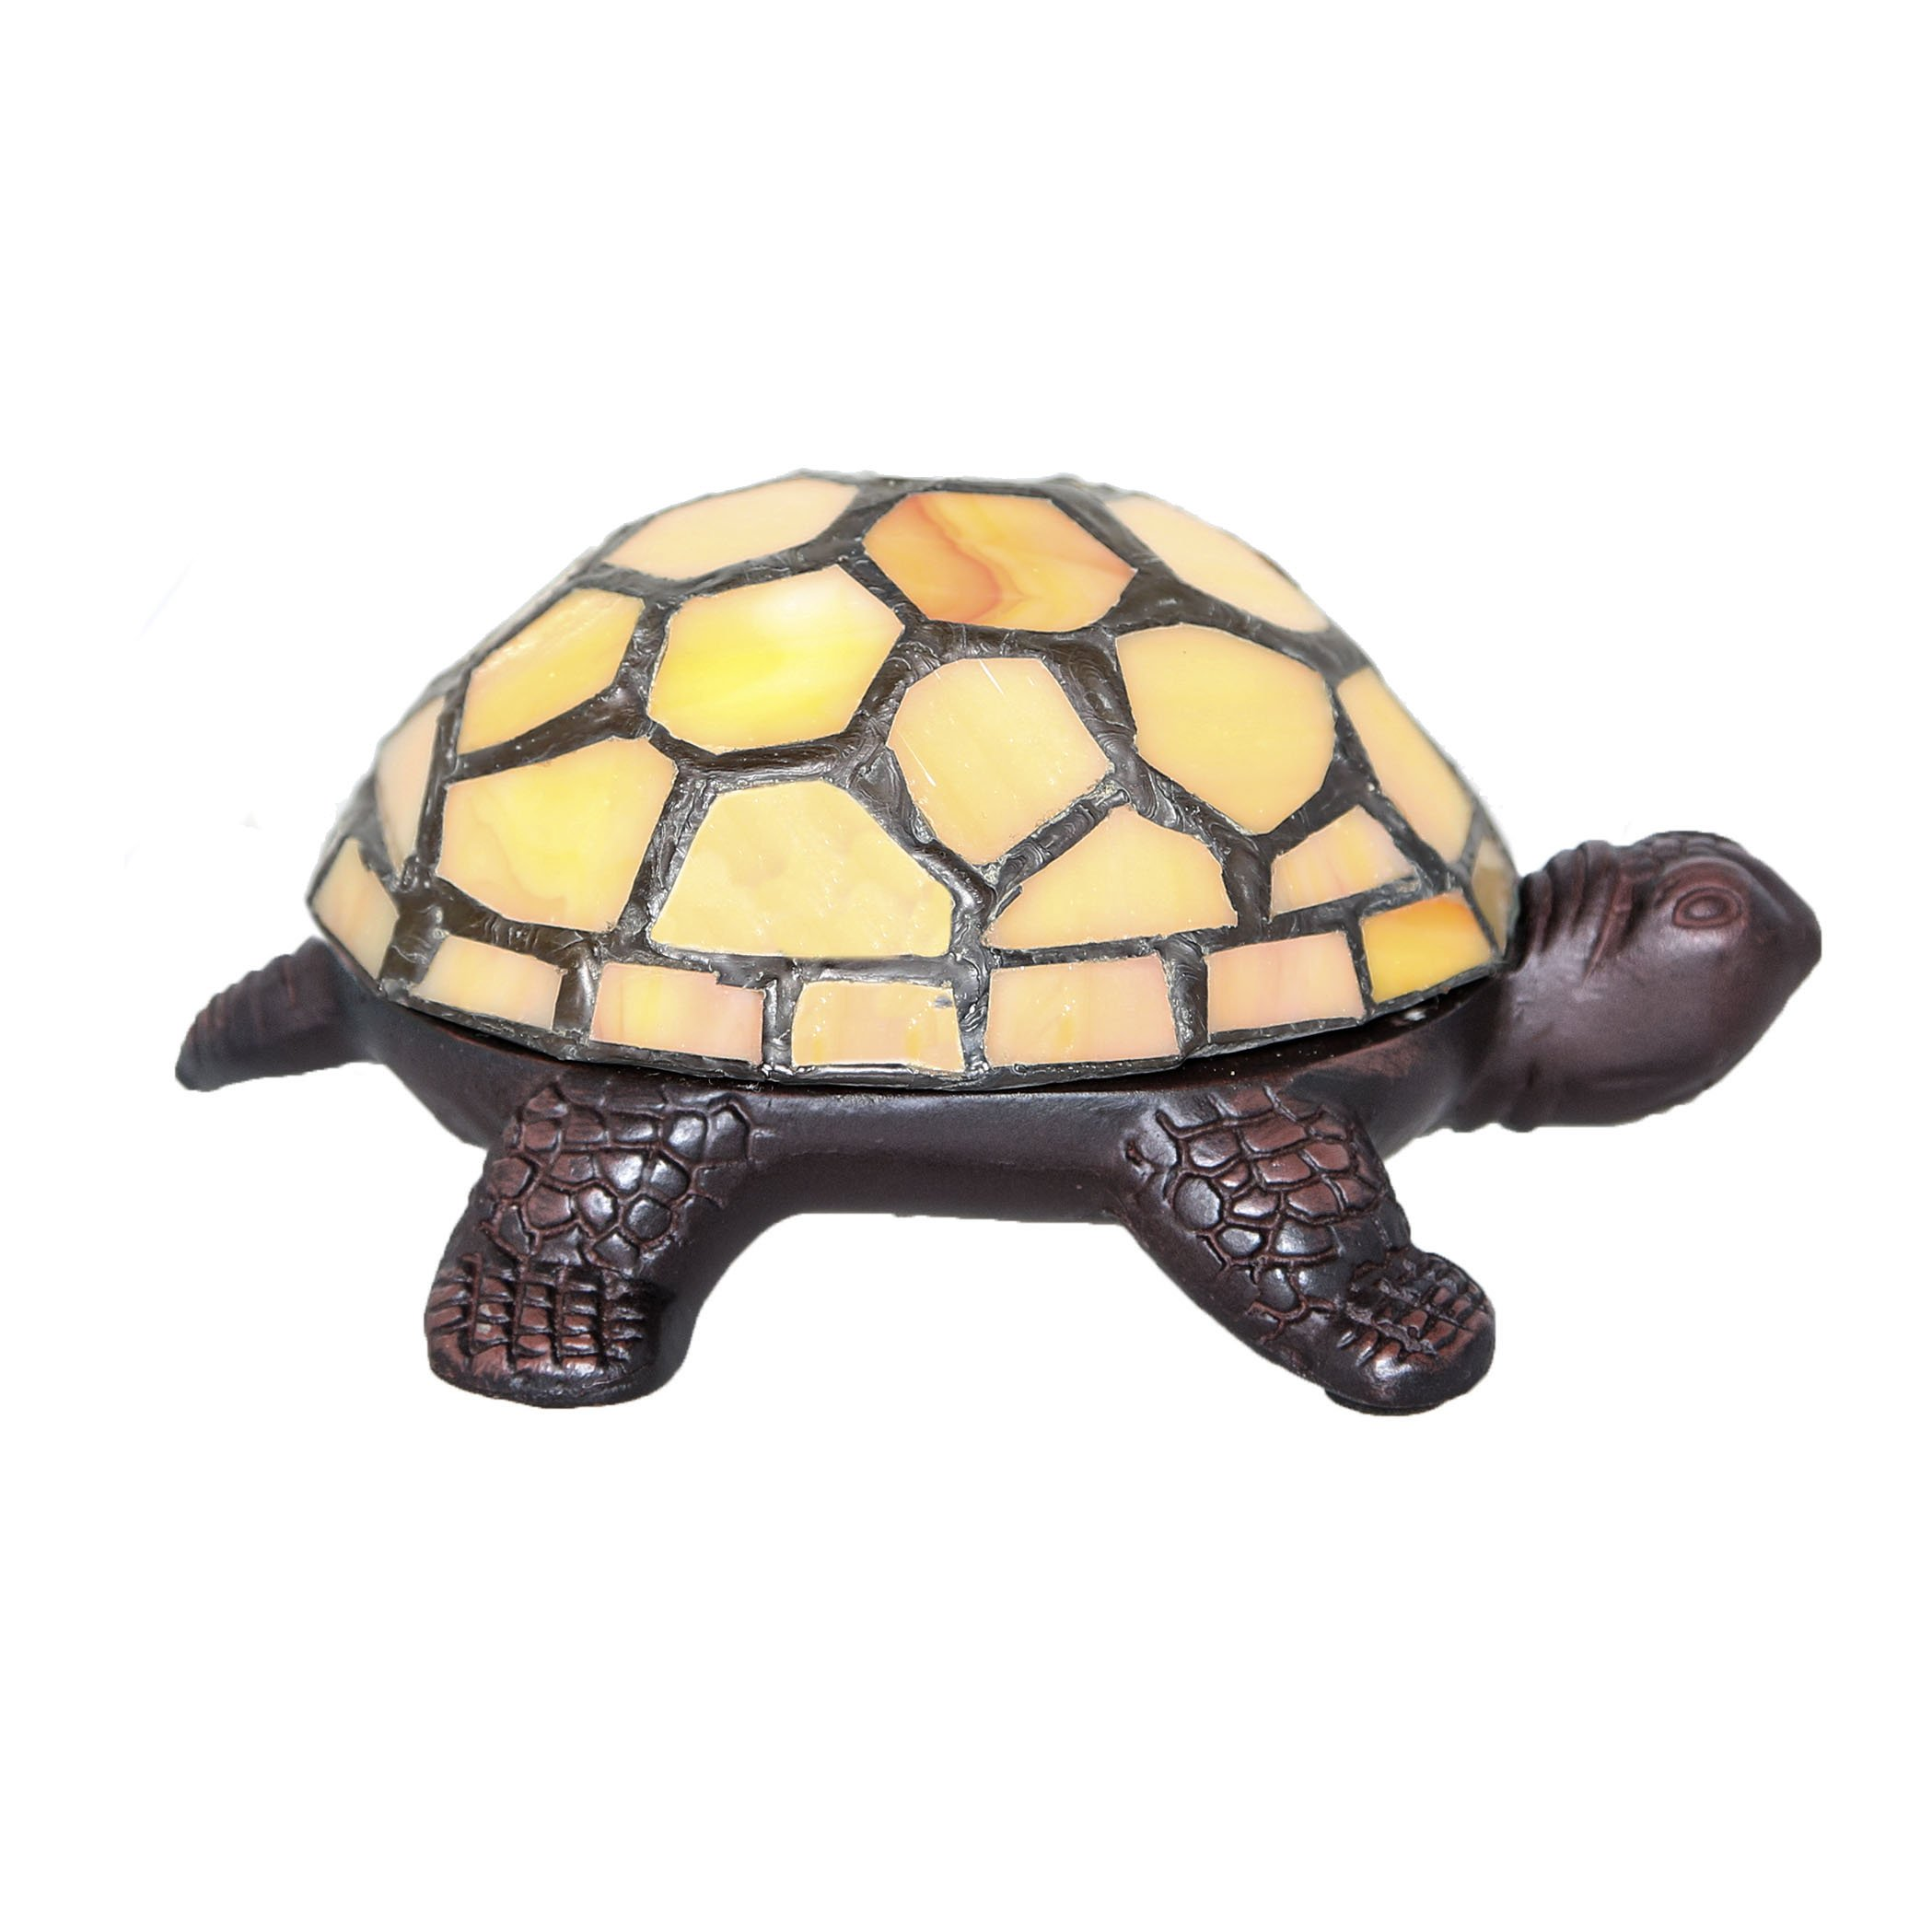 2.5'' Stained Glass LED Cordless Turtle Accent Lamp - Yellow